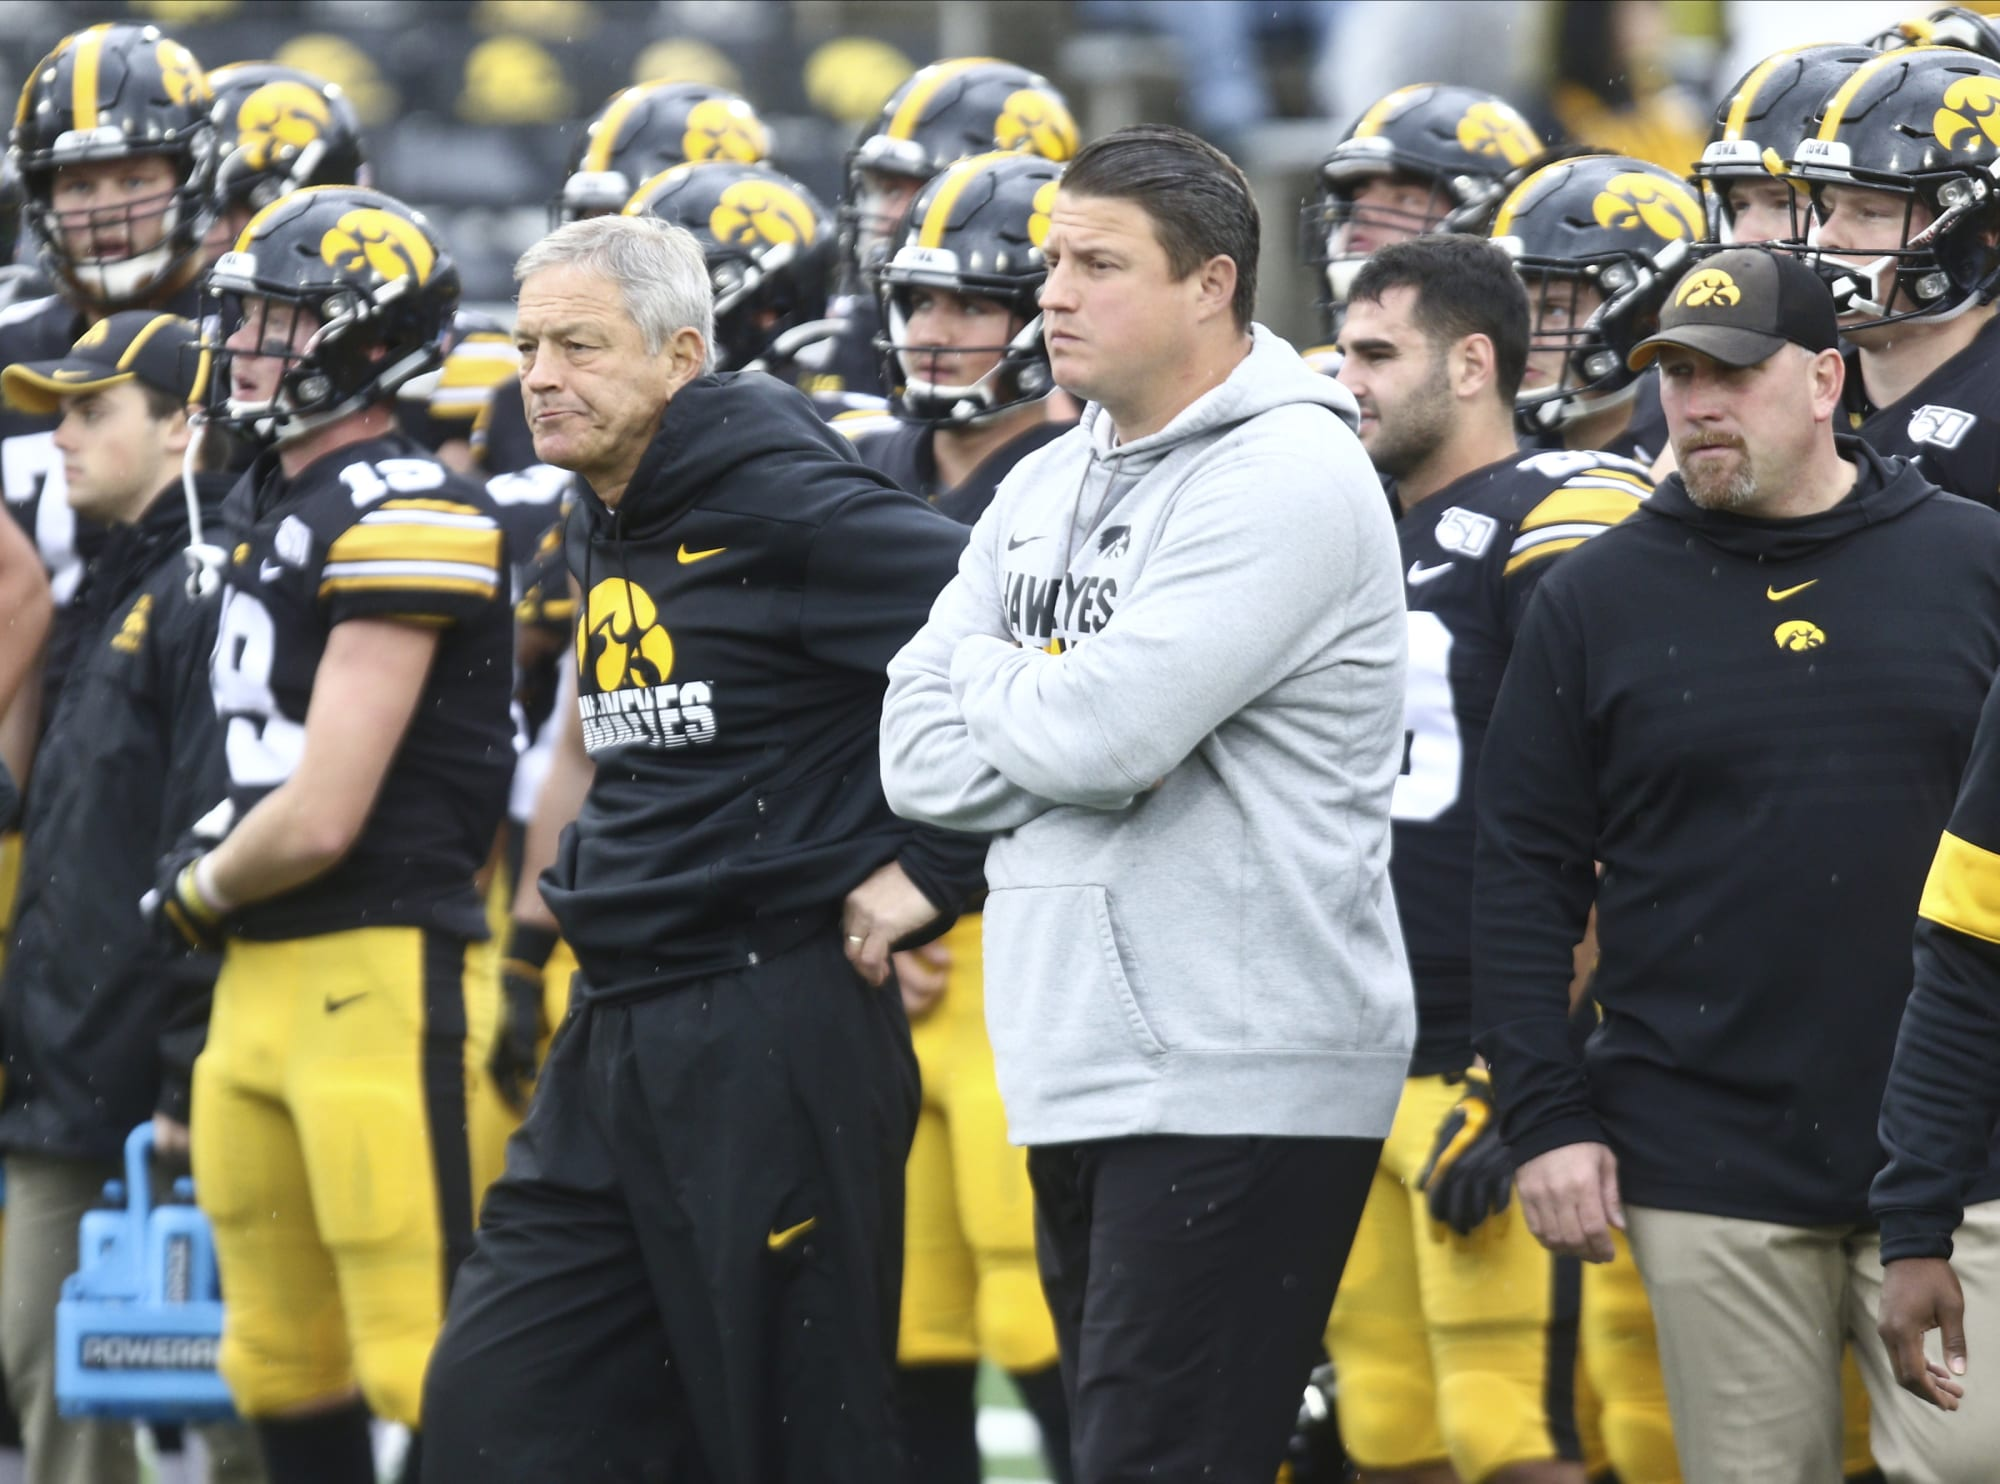 Iowa Football: Hawks stiff schedule could lead to disappointing 2020